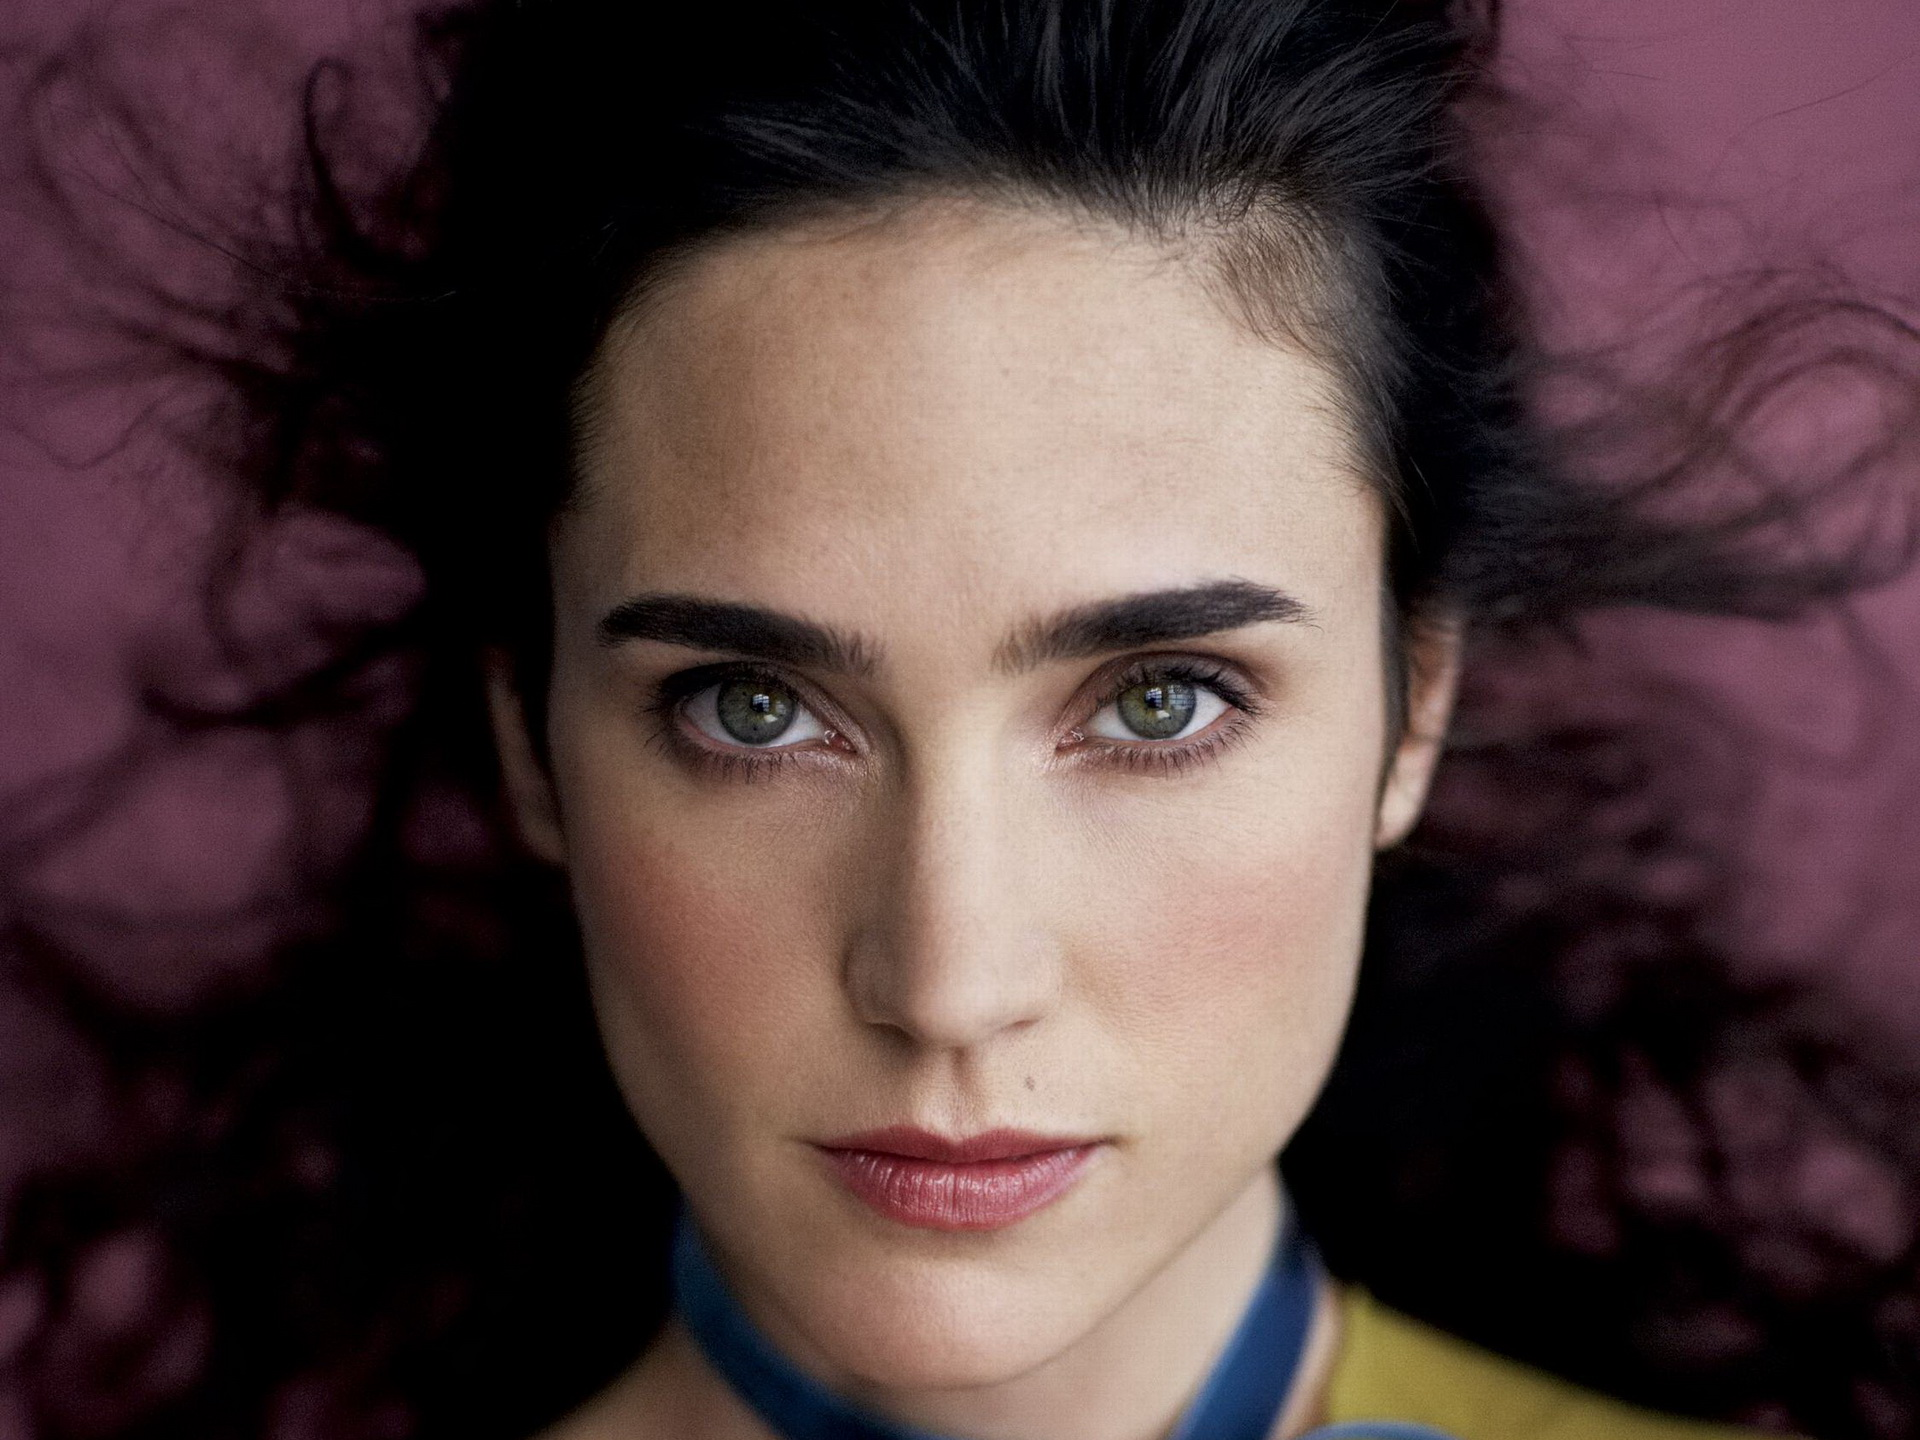 jennifer connelly face wallpaper pictures 51070